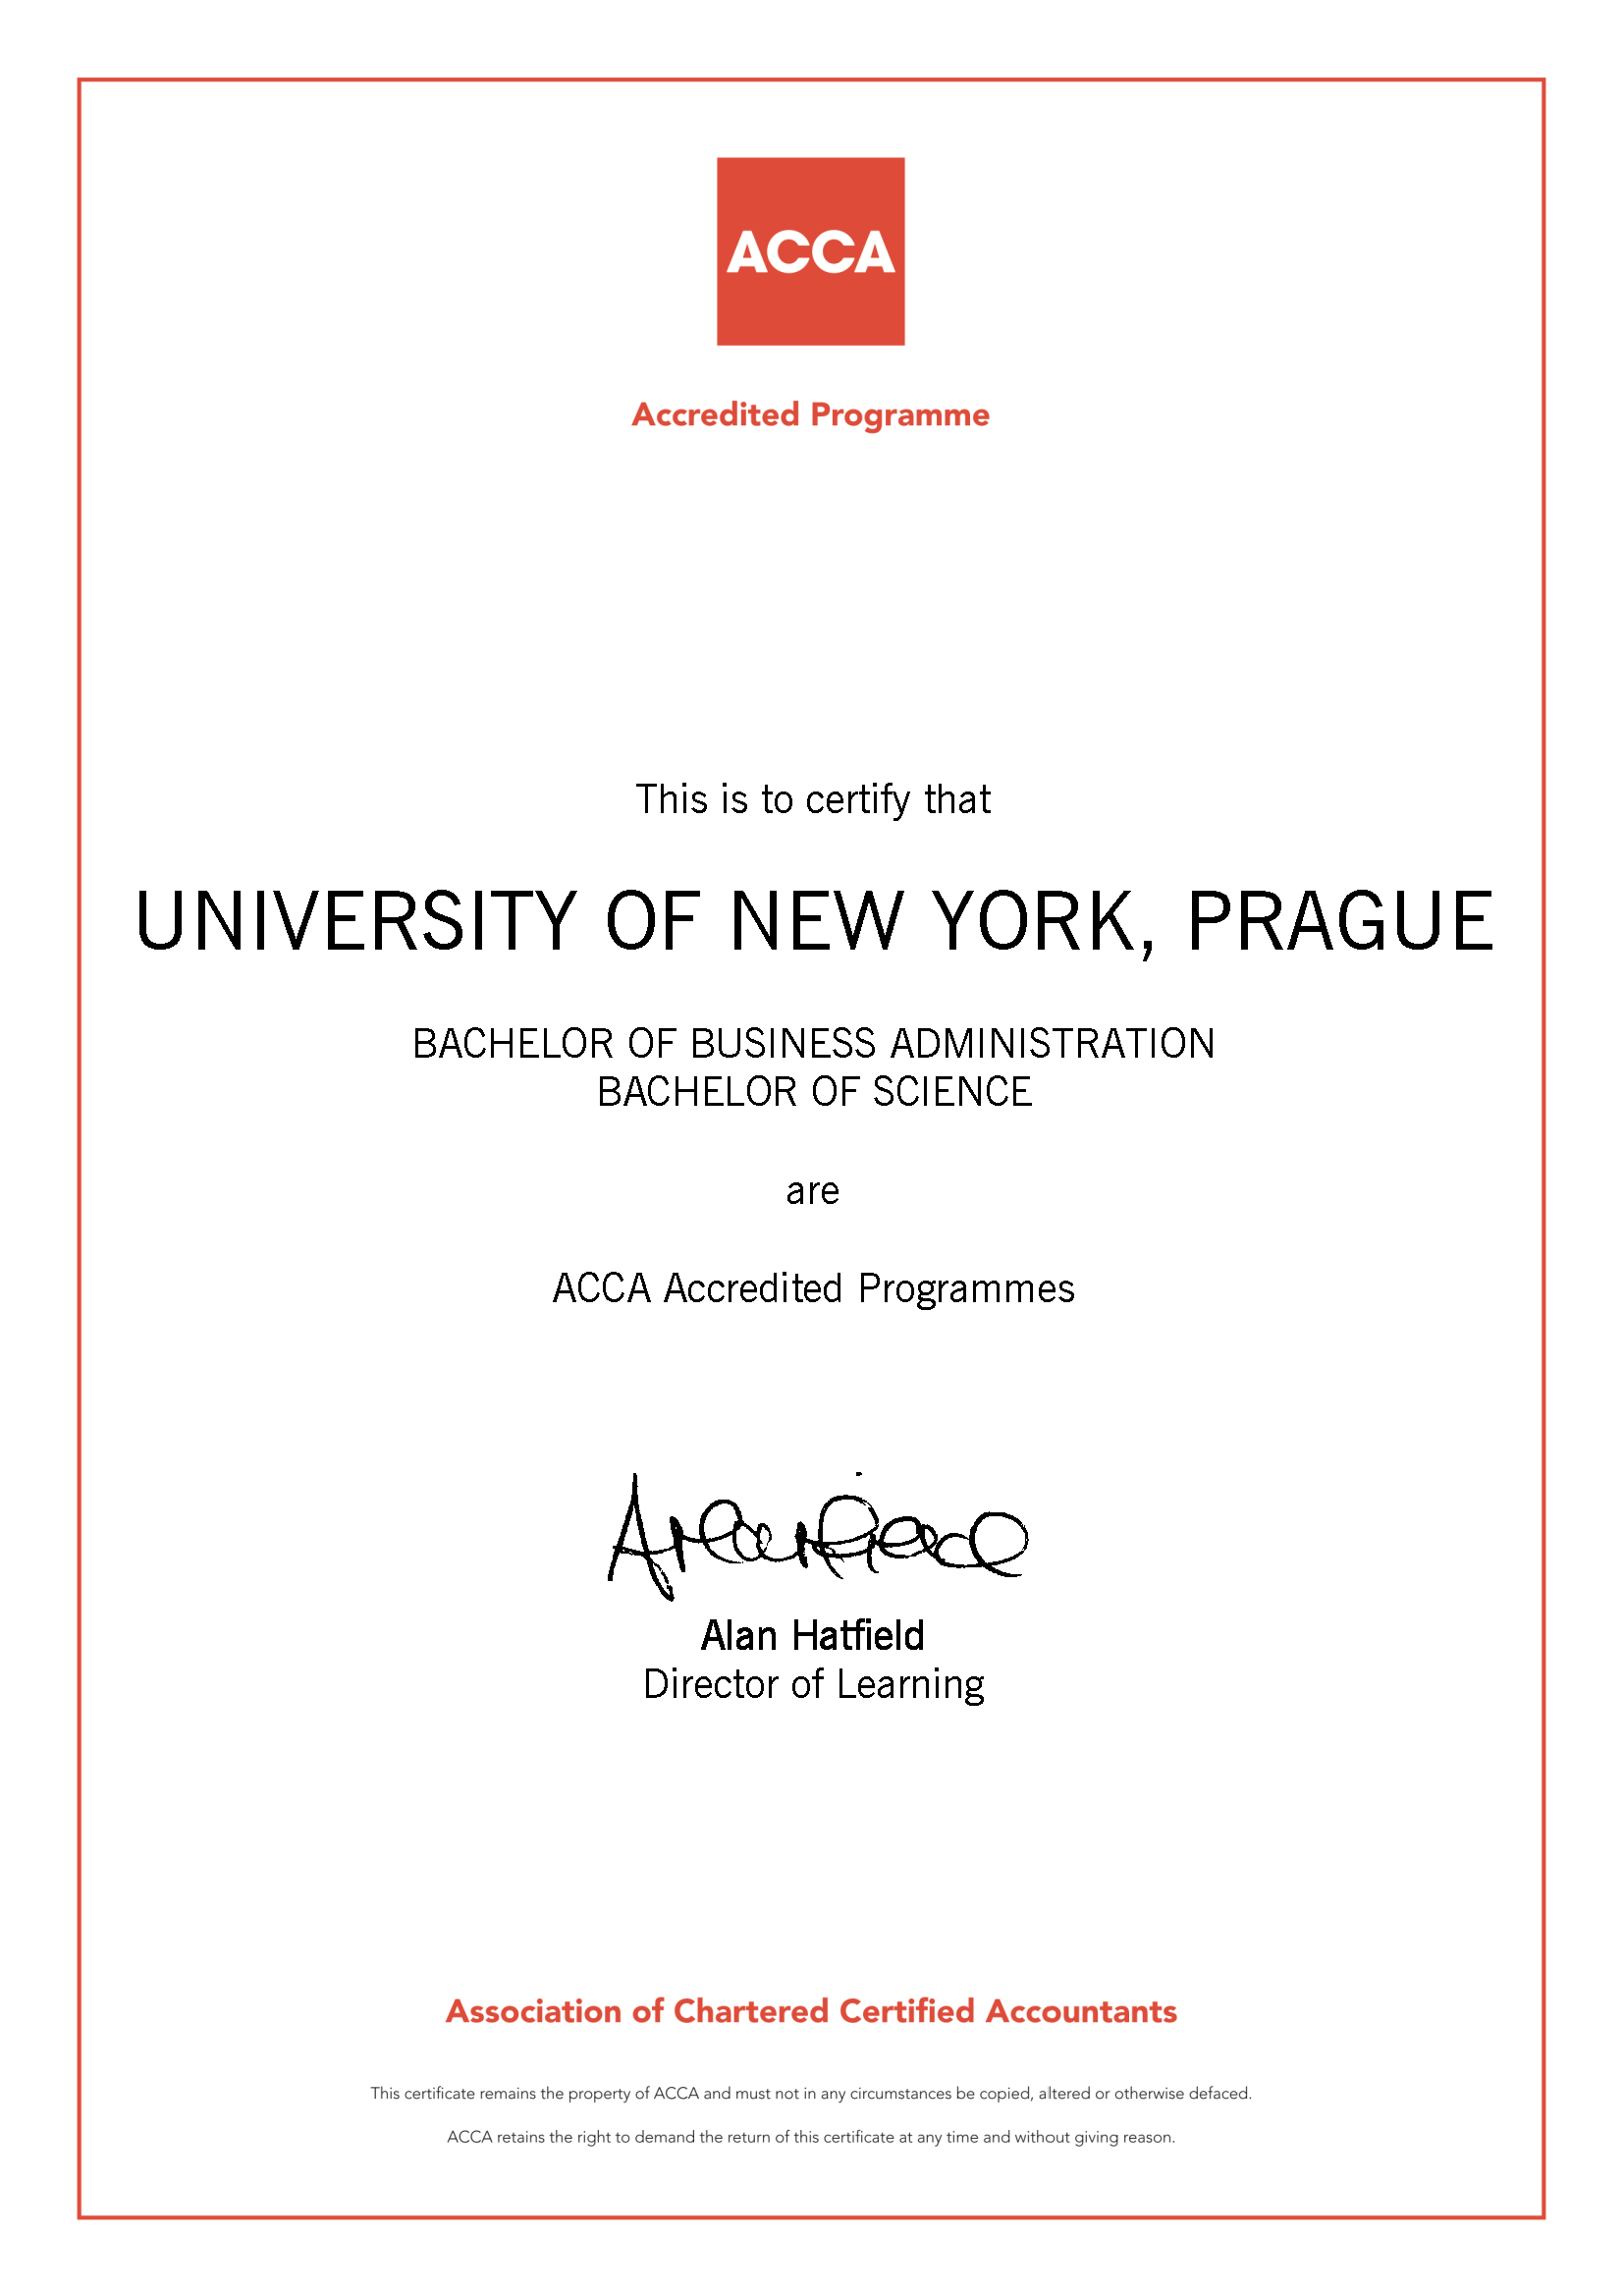 Unyp gets acca accreditation university of new york in prague acca accreditation certificate 1betcityfo Gallery